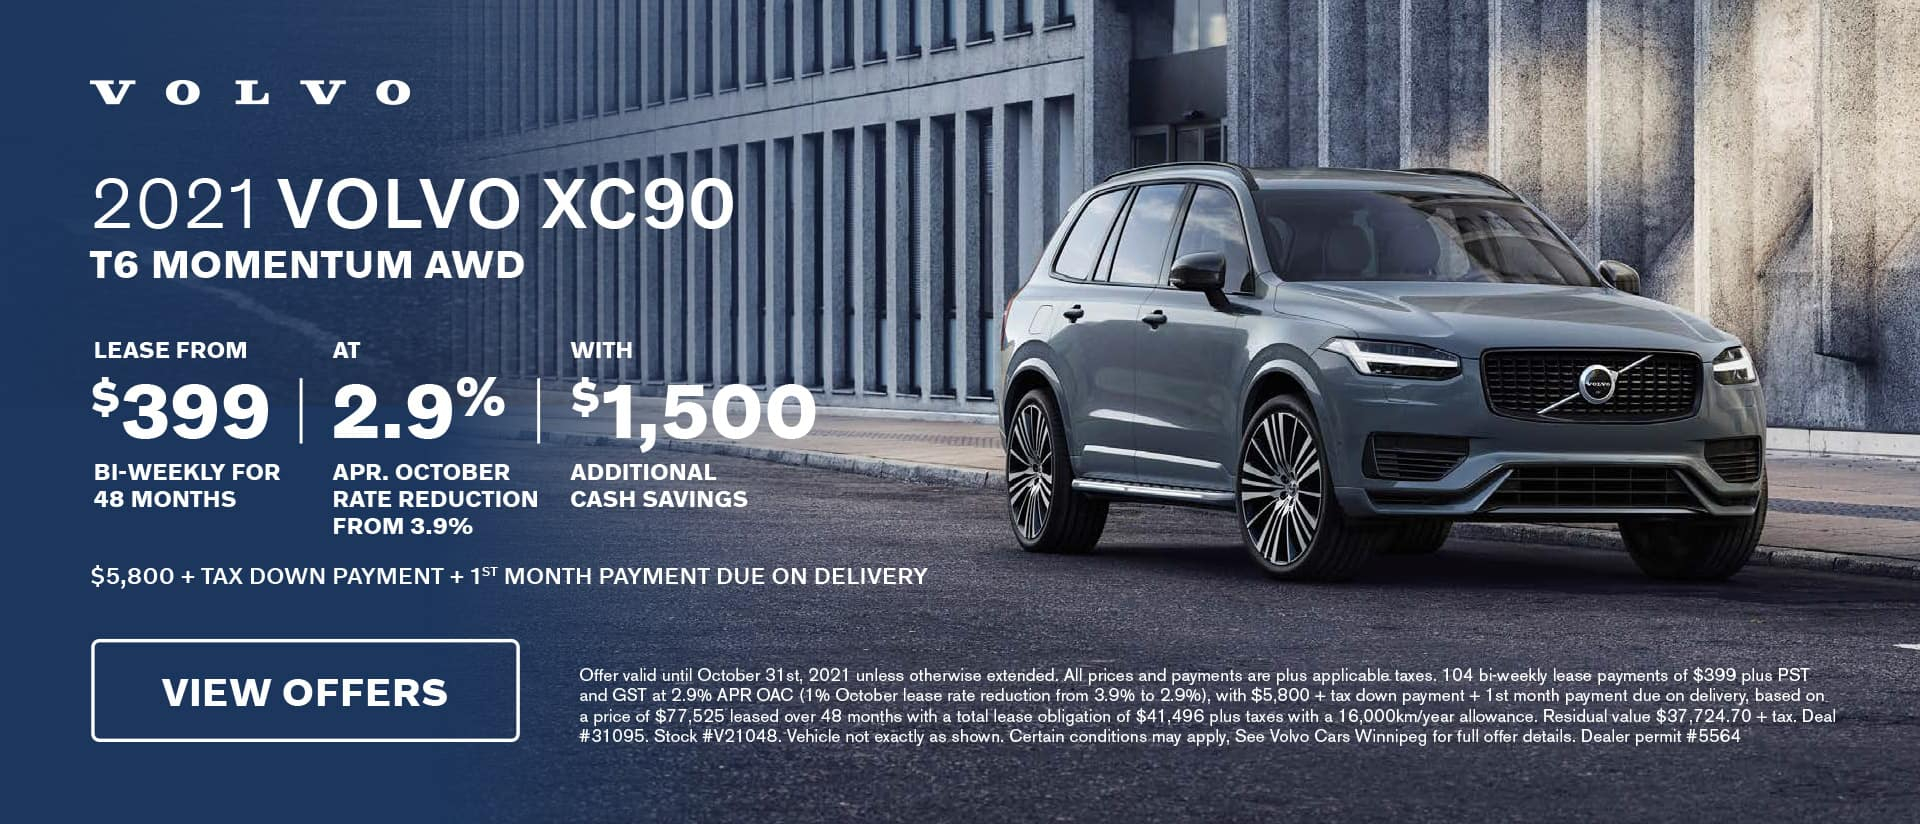 2021 VOLVO XC90 T6 MOMENTUM AWD LEASE FROM AT WITH $399 2.9% $1,500 BI-WEEKLY FOR APR. OCTOBER ADDITIONAL 48 MONTHS RATE REDUCTION CASH SAVINGS FROM 3.9% $5,800 + TAX DOWN PAYMENT + 1ST MONTH PAYMENT DUE ON DELIVERY